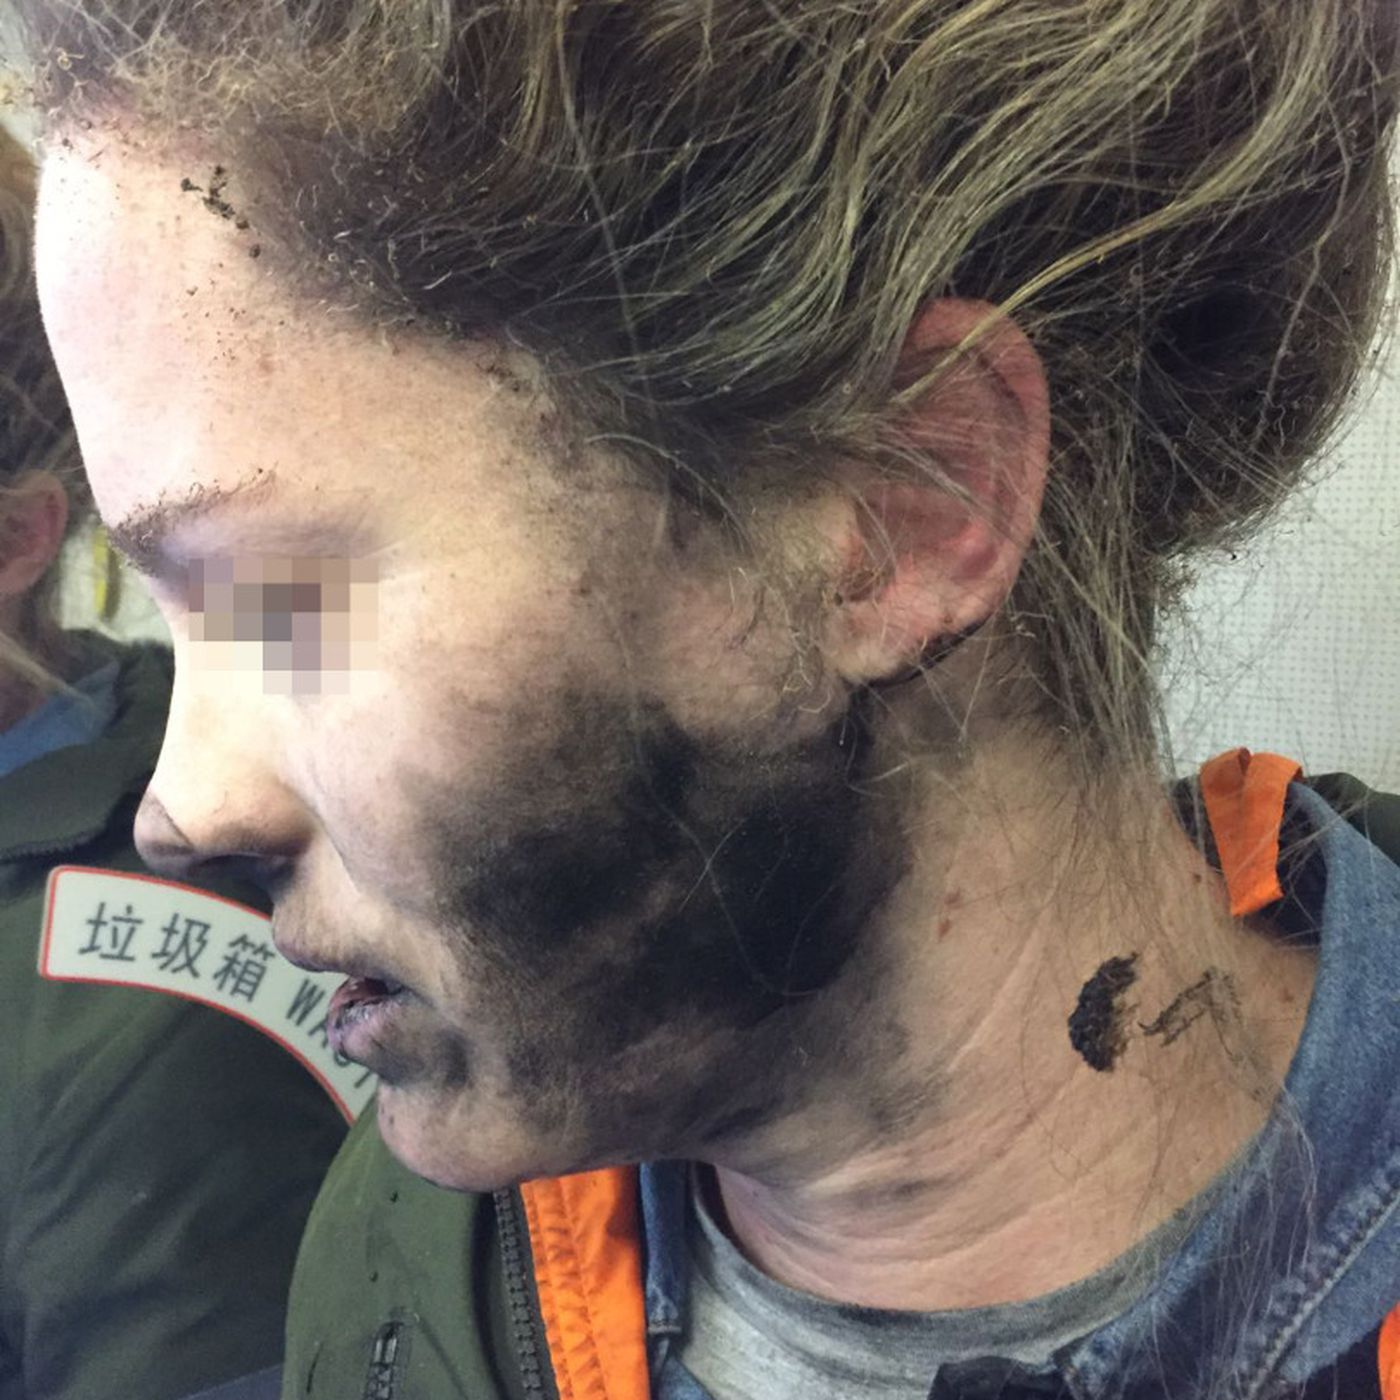 Woman was reportedly burned by Beats headphones 4cd110c913